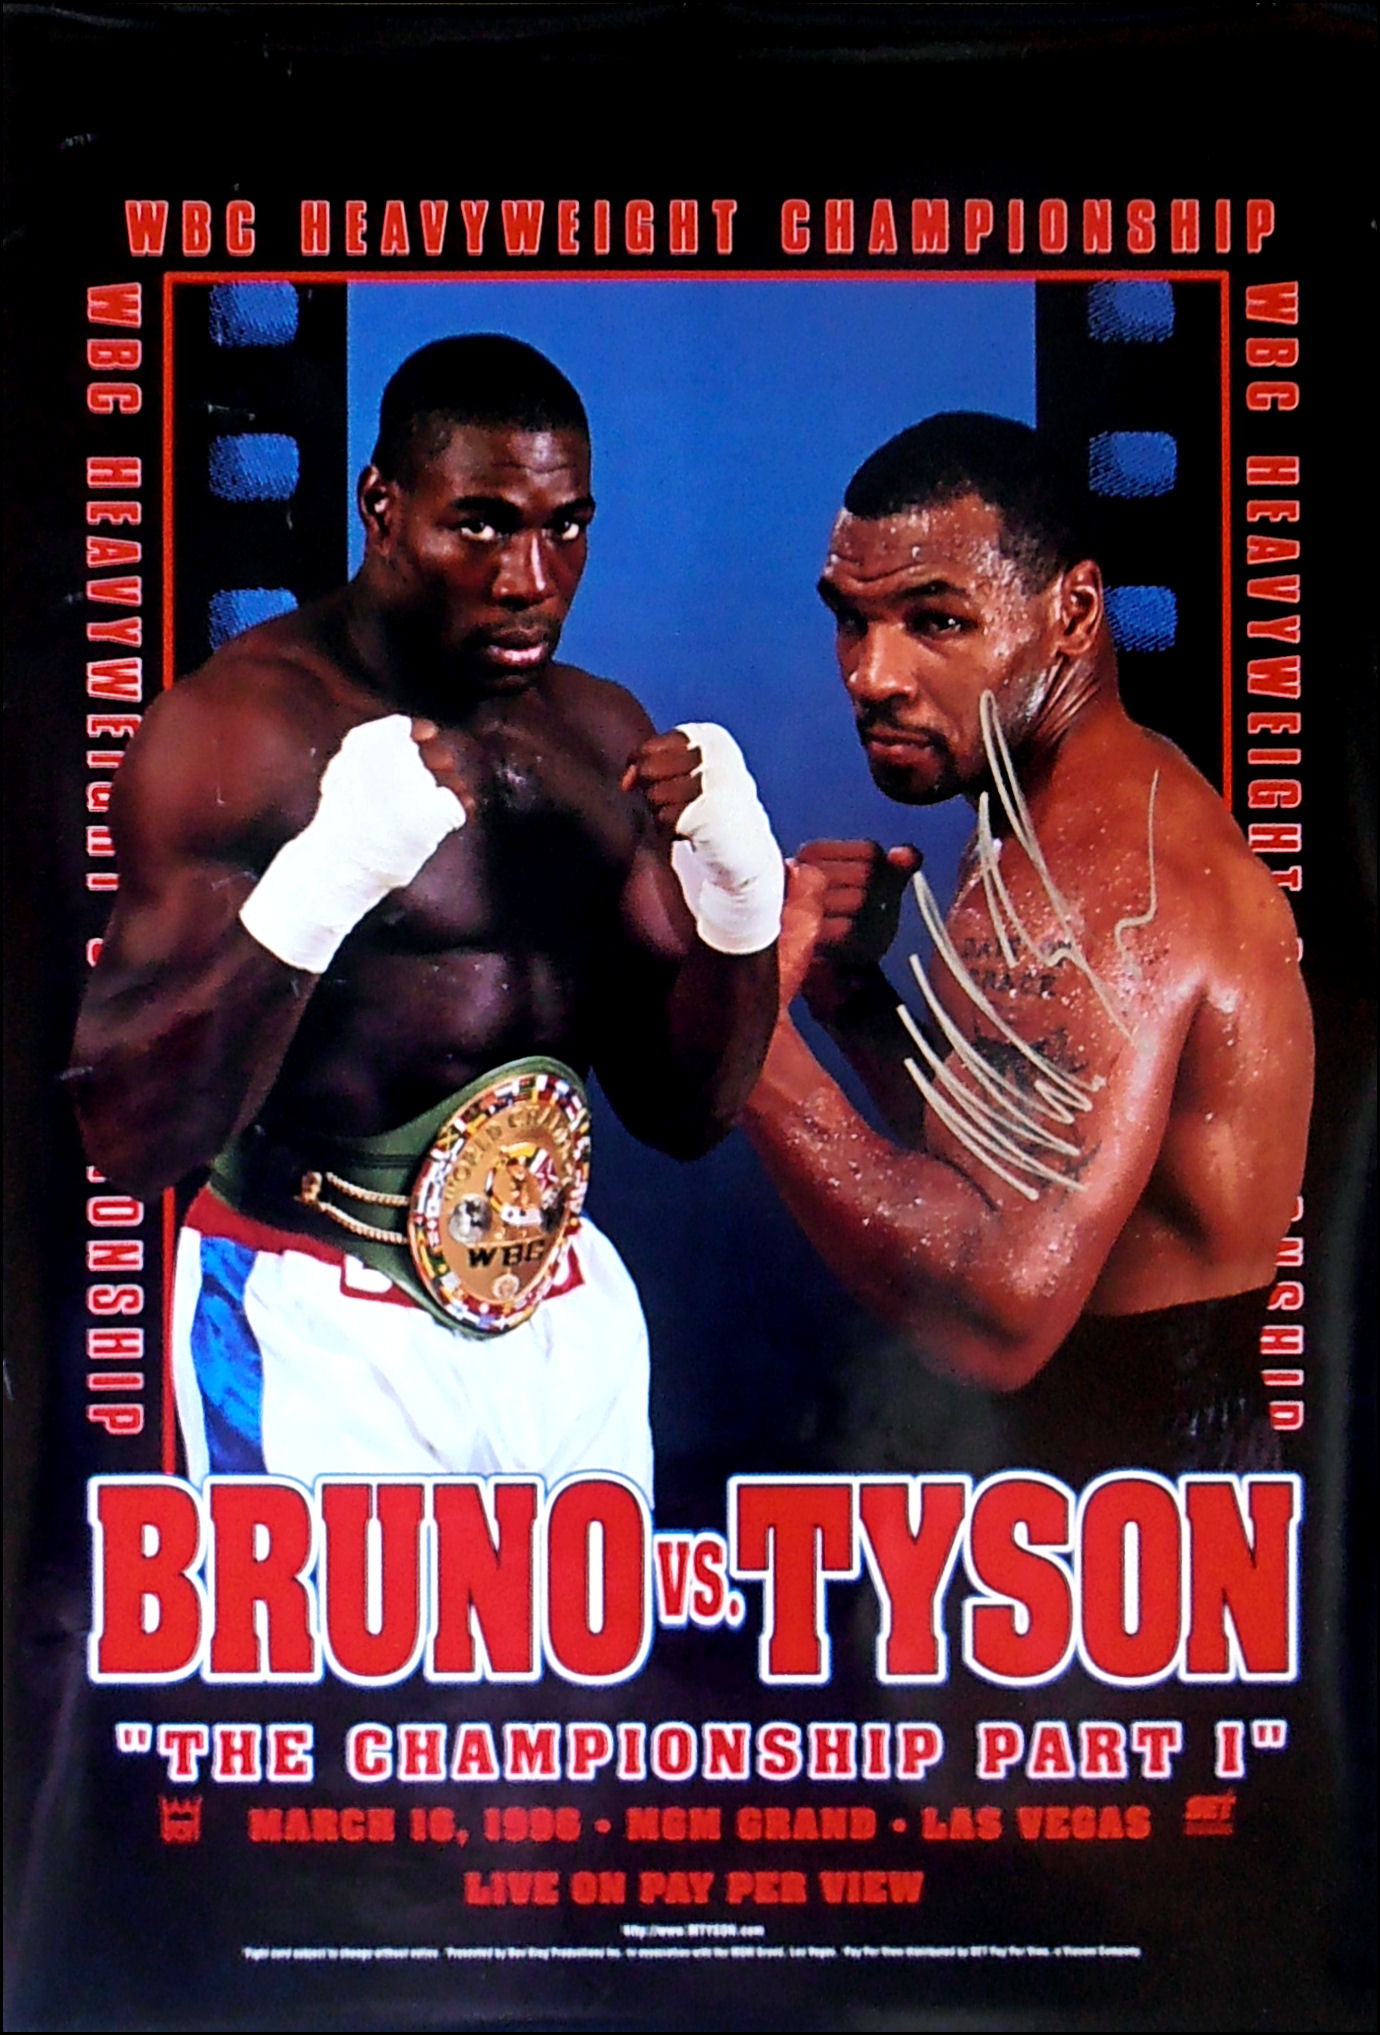 Frank Bruno vs. Mike Tyson